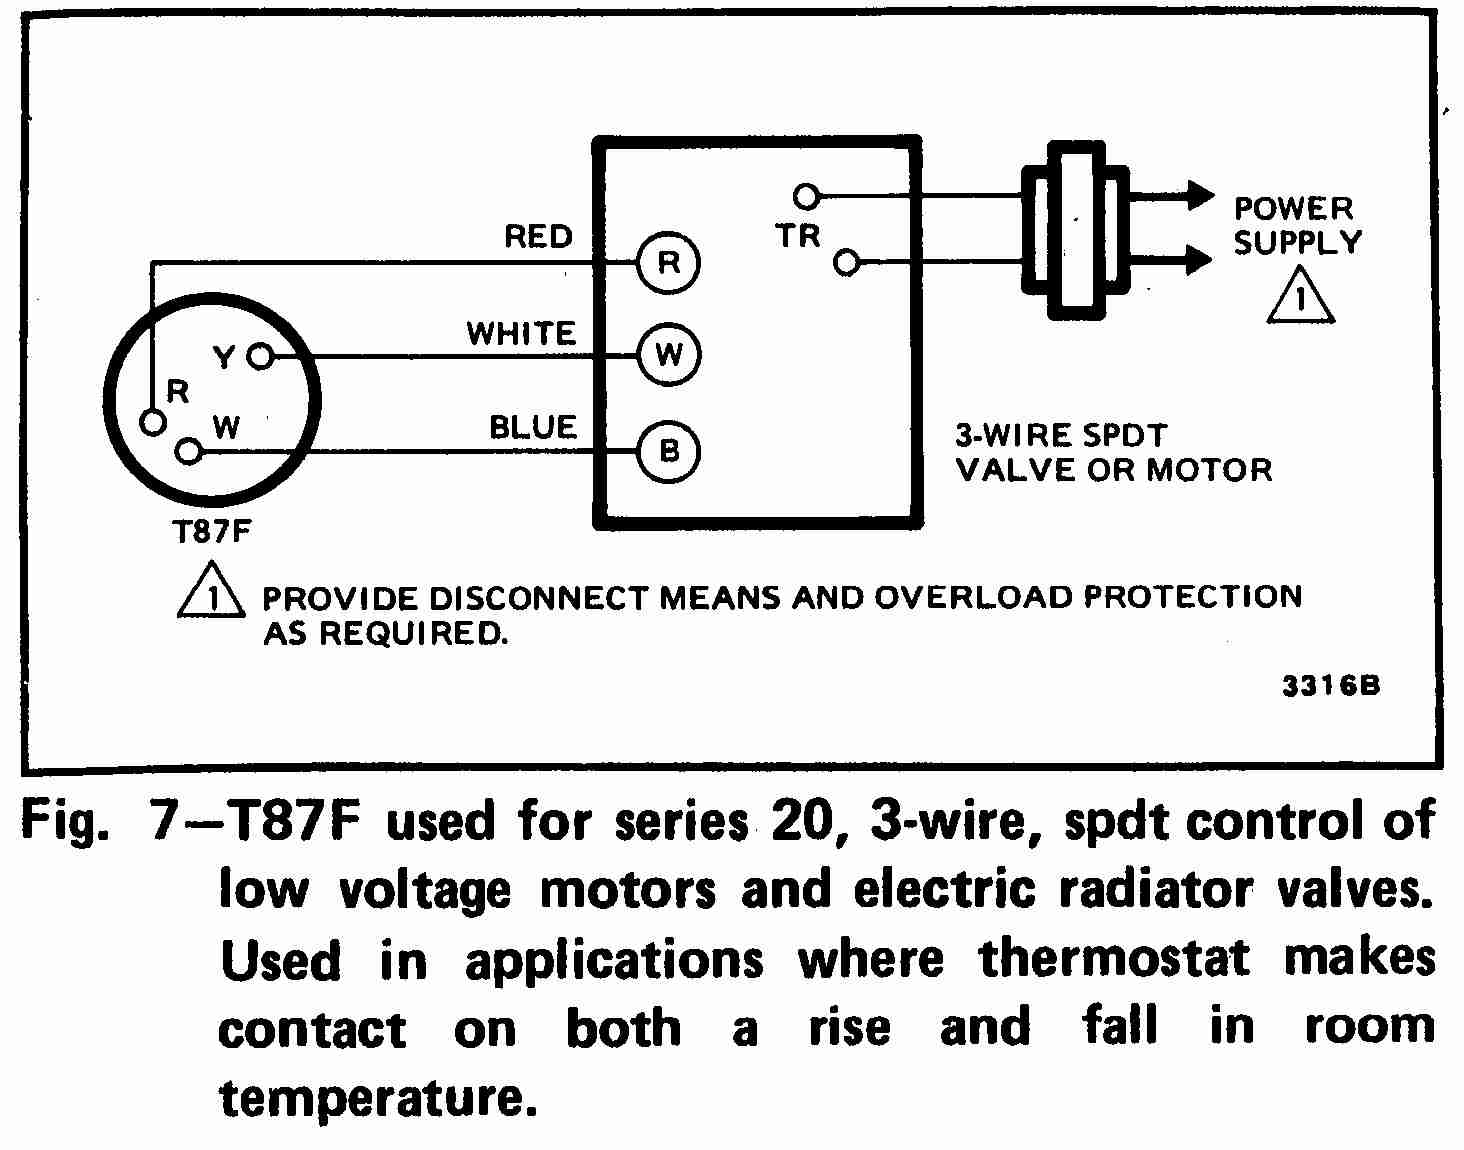 TT_T87F_0002_3W2_DJF thermostat wiring diagram thermostat wiring diagrams instruction totaline thermostat wiring diagram at soozxer.org